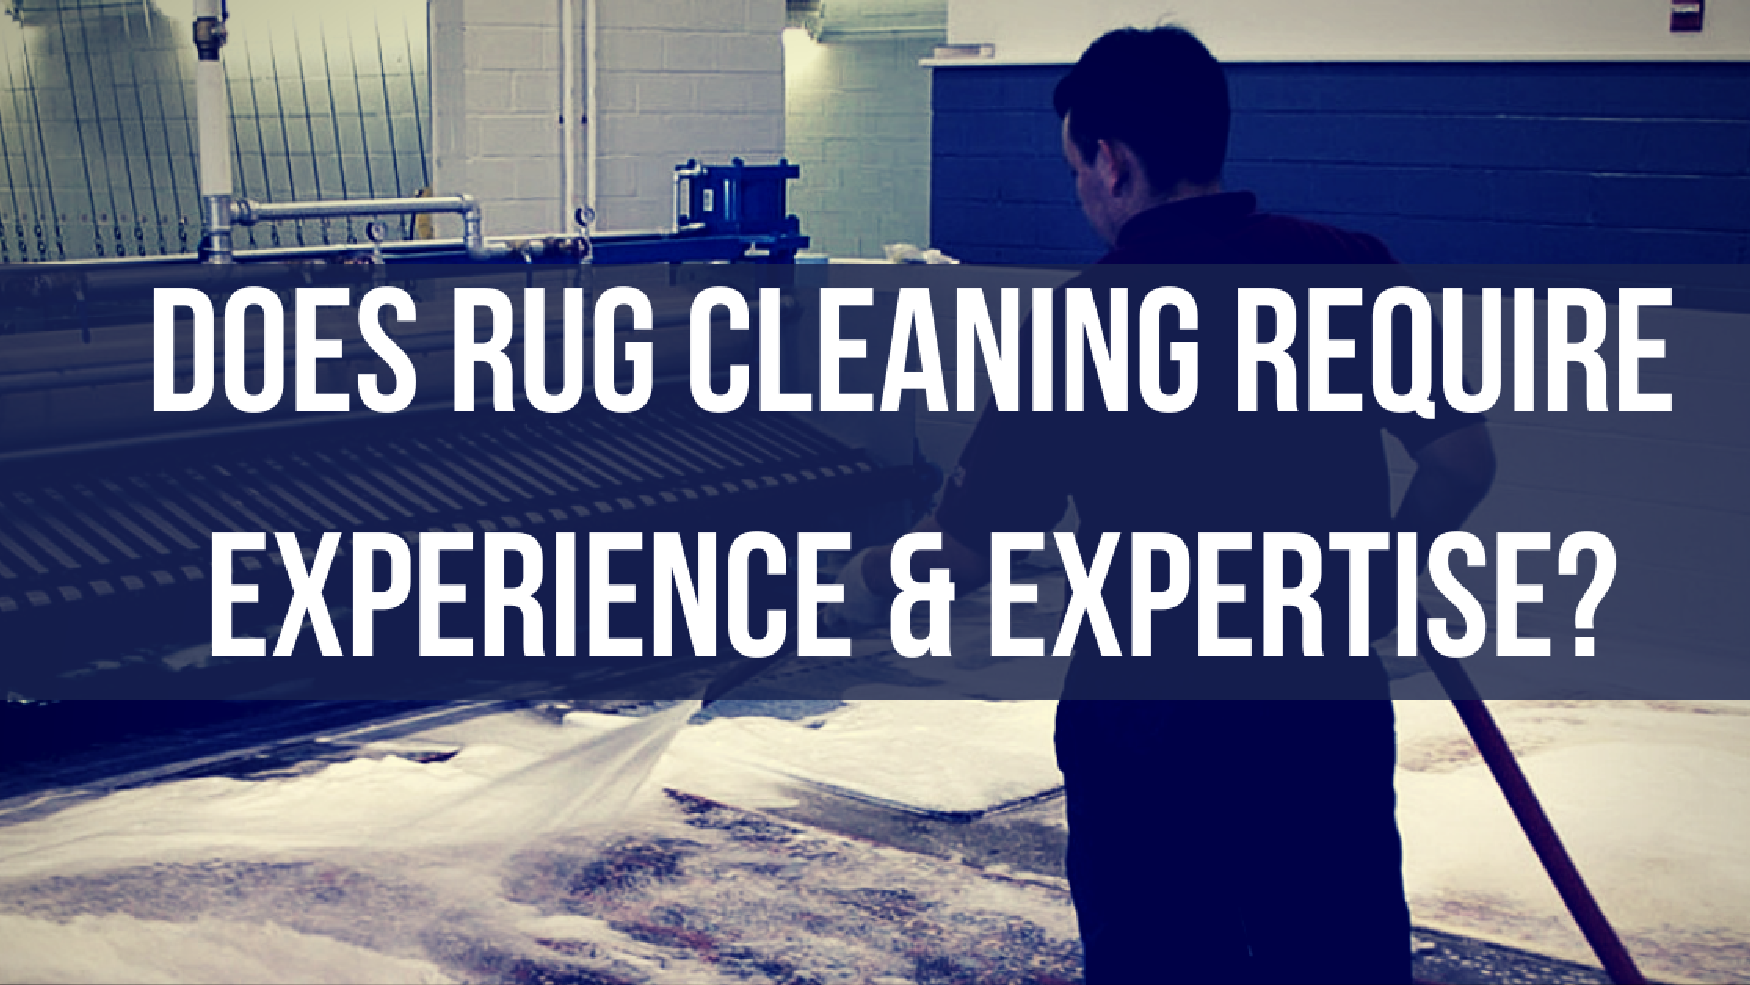 does-rug-cleaning-require-experience-expertise_